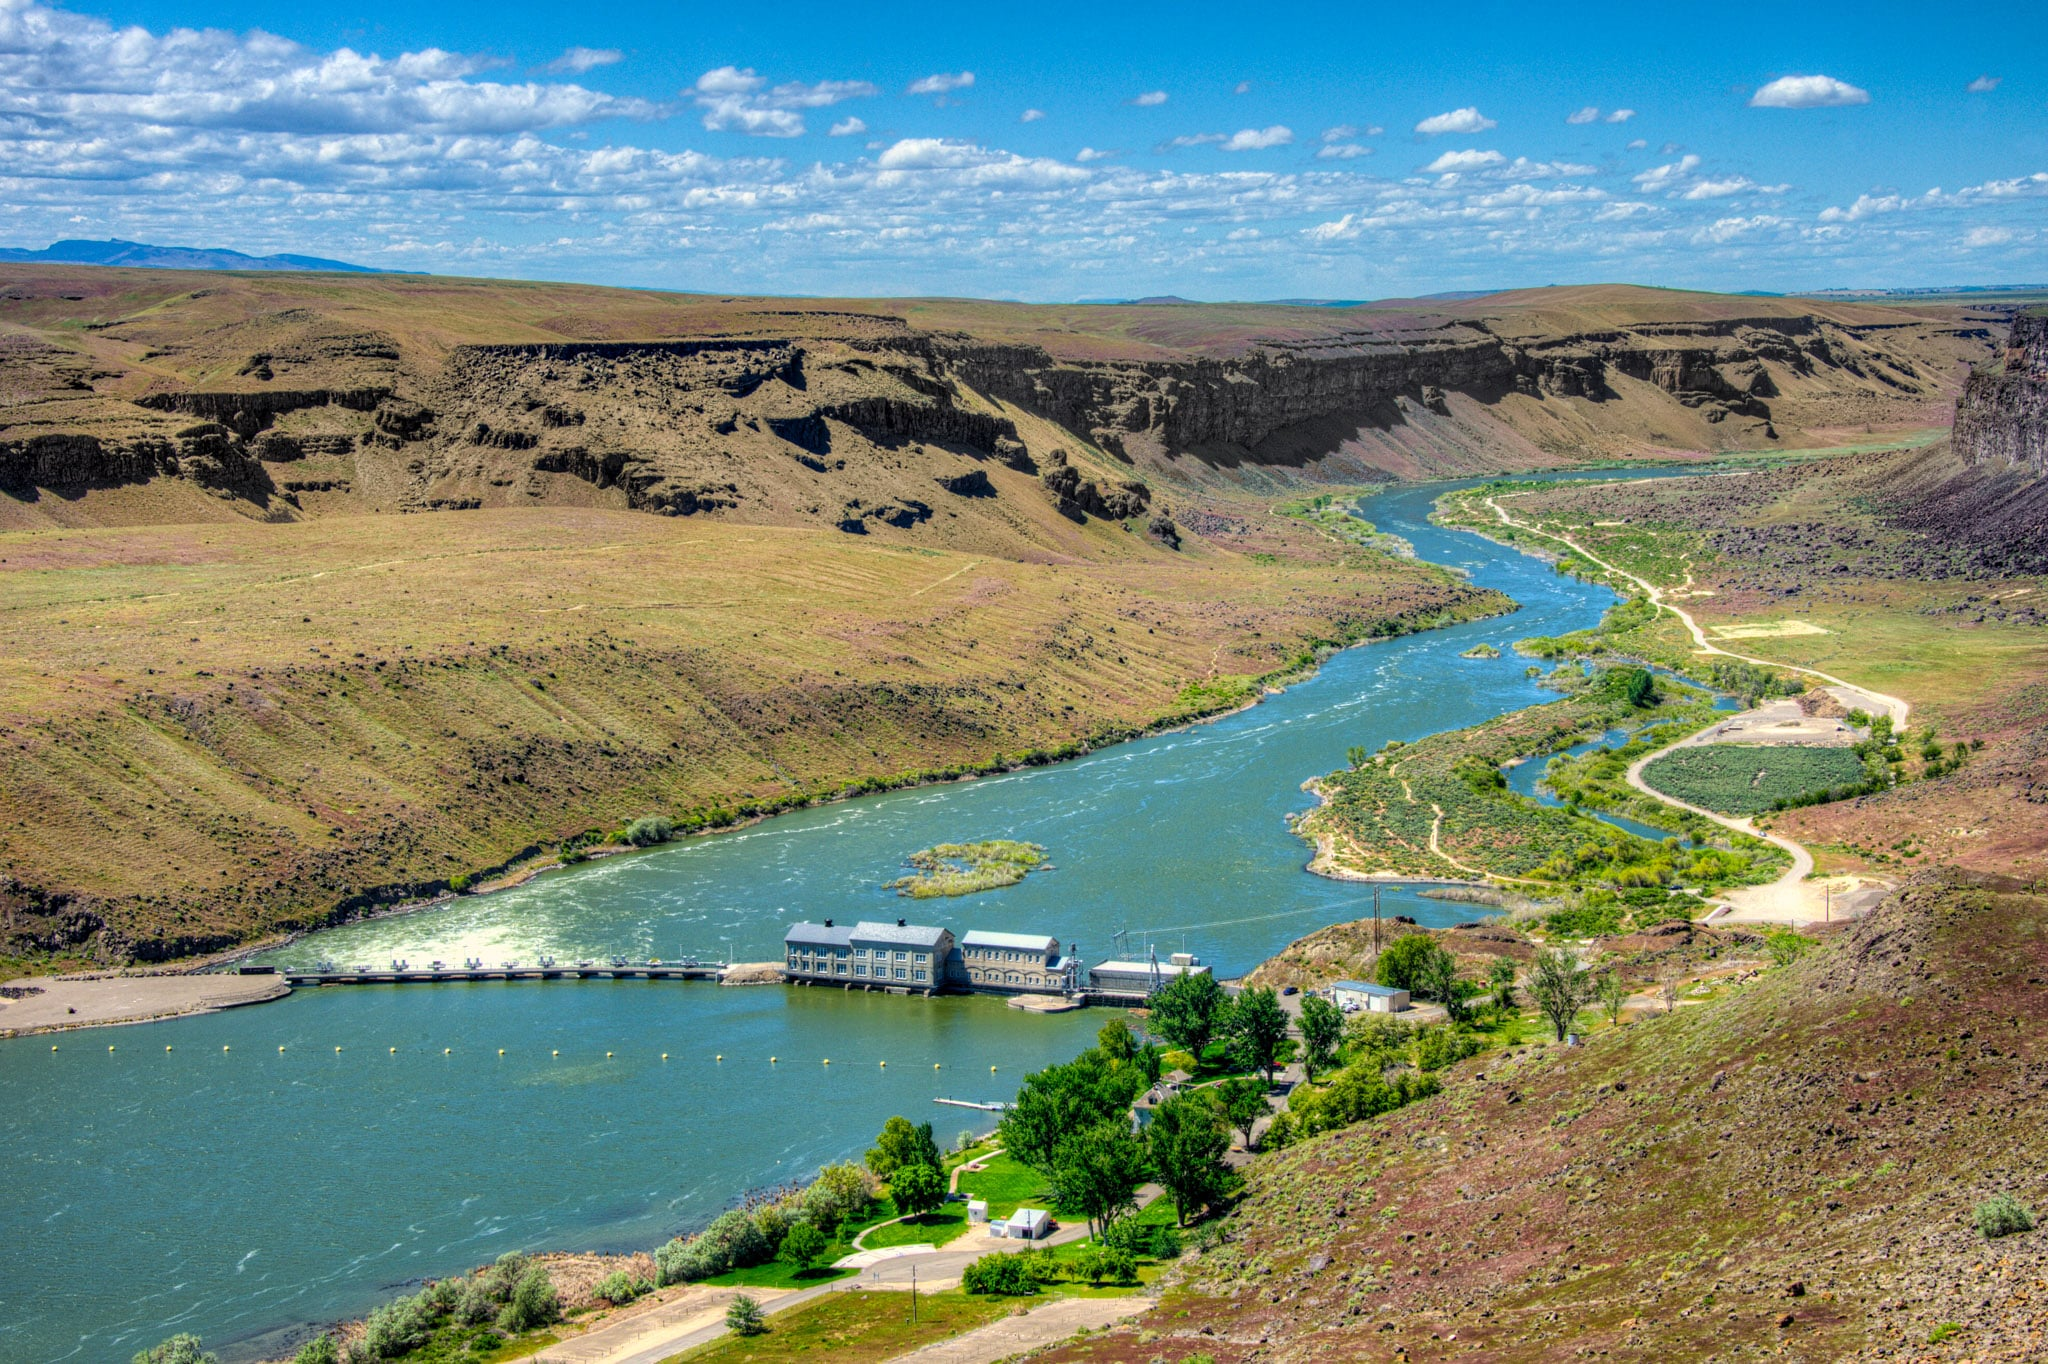 A view of the Swan Falls power station on the Snake River in the Morley Nelson Snake River Birds of Prey National Conservation Area south of Boise, Idaho.